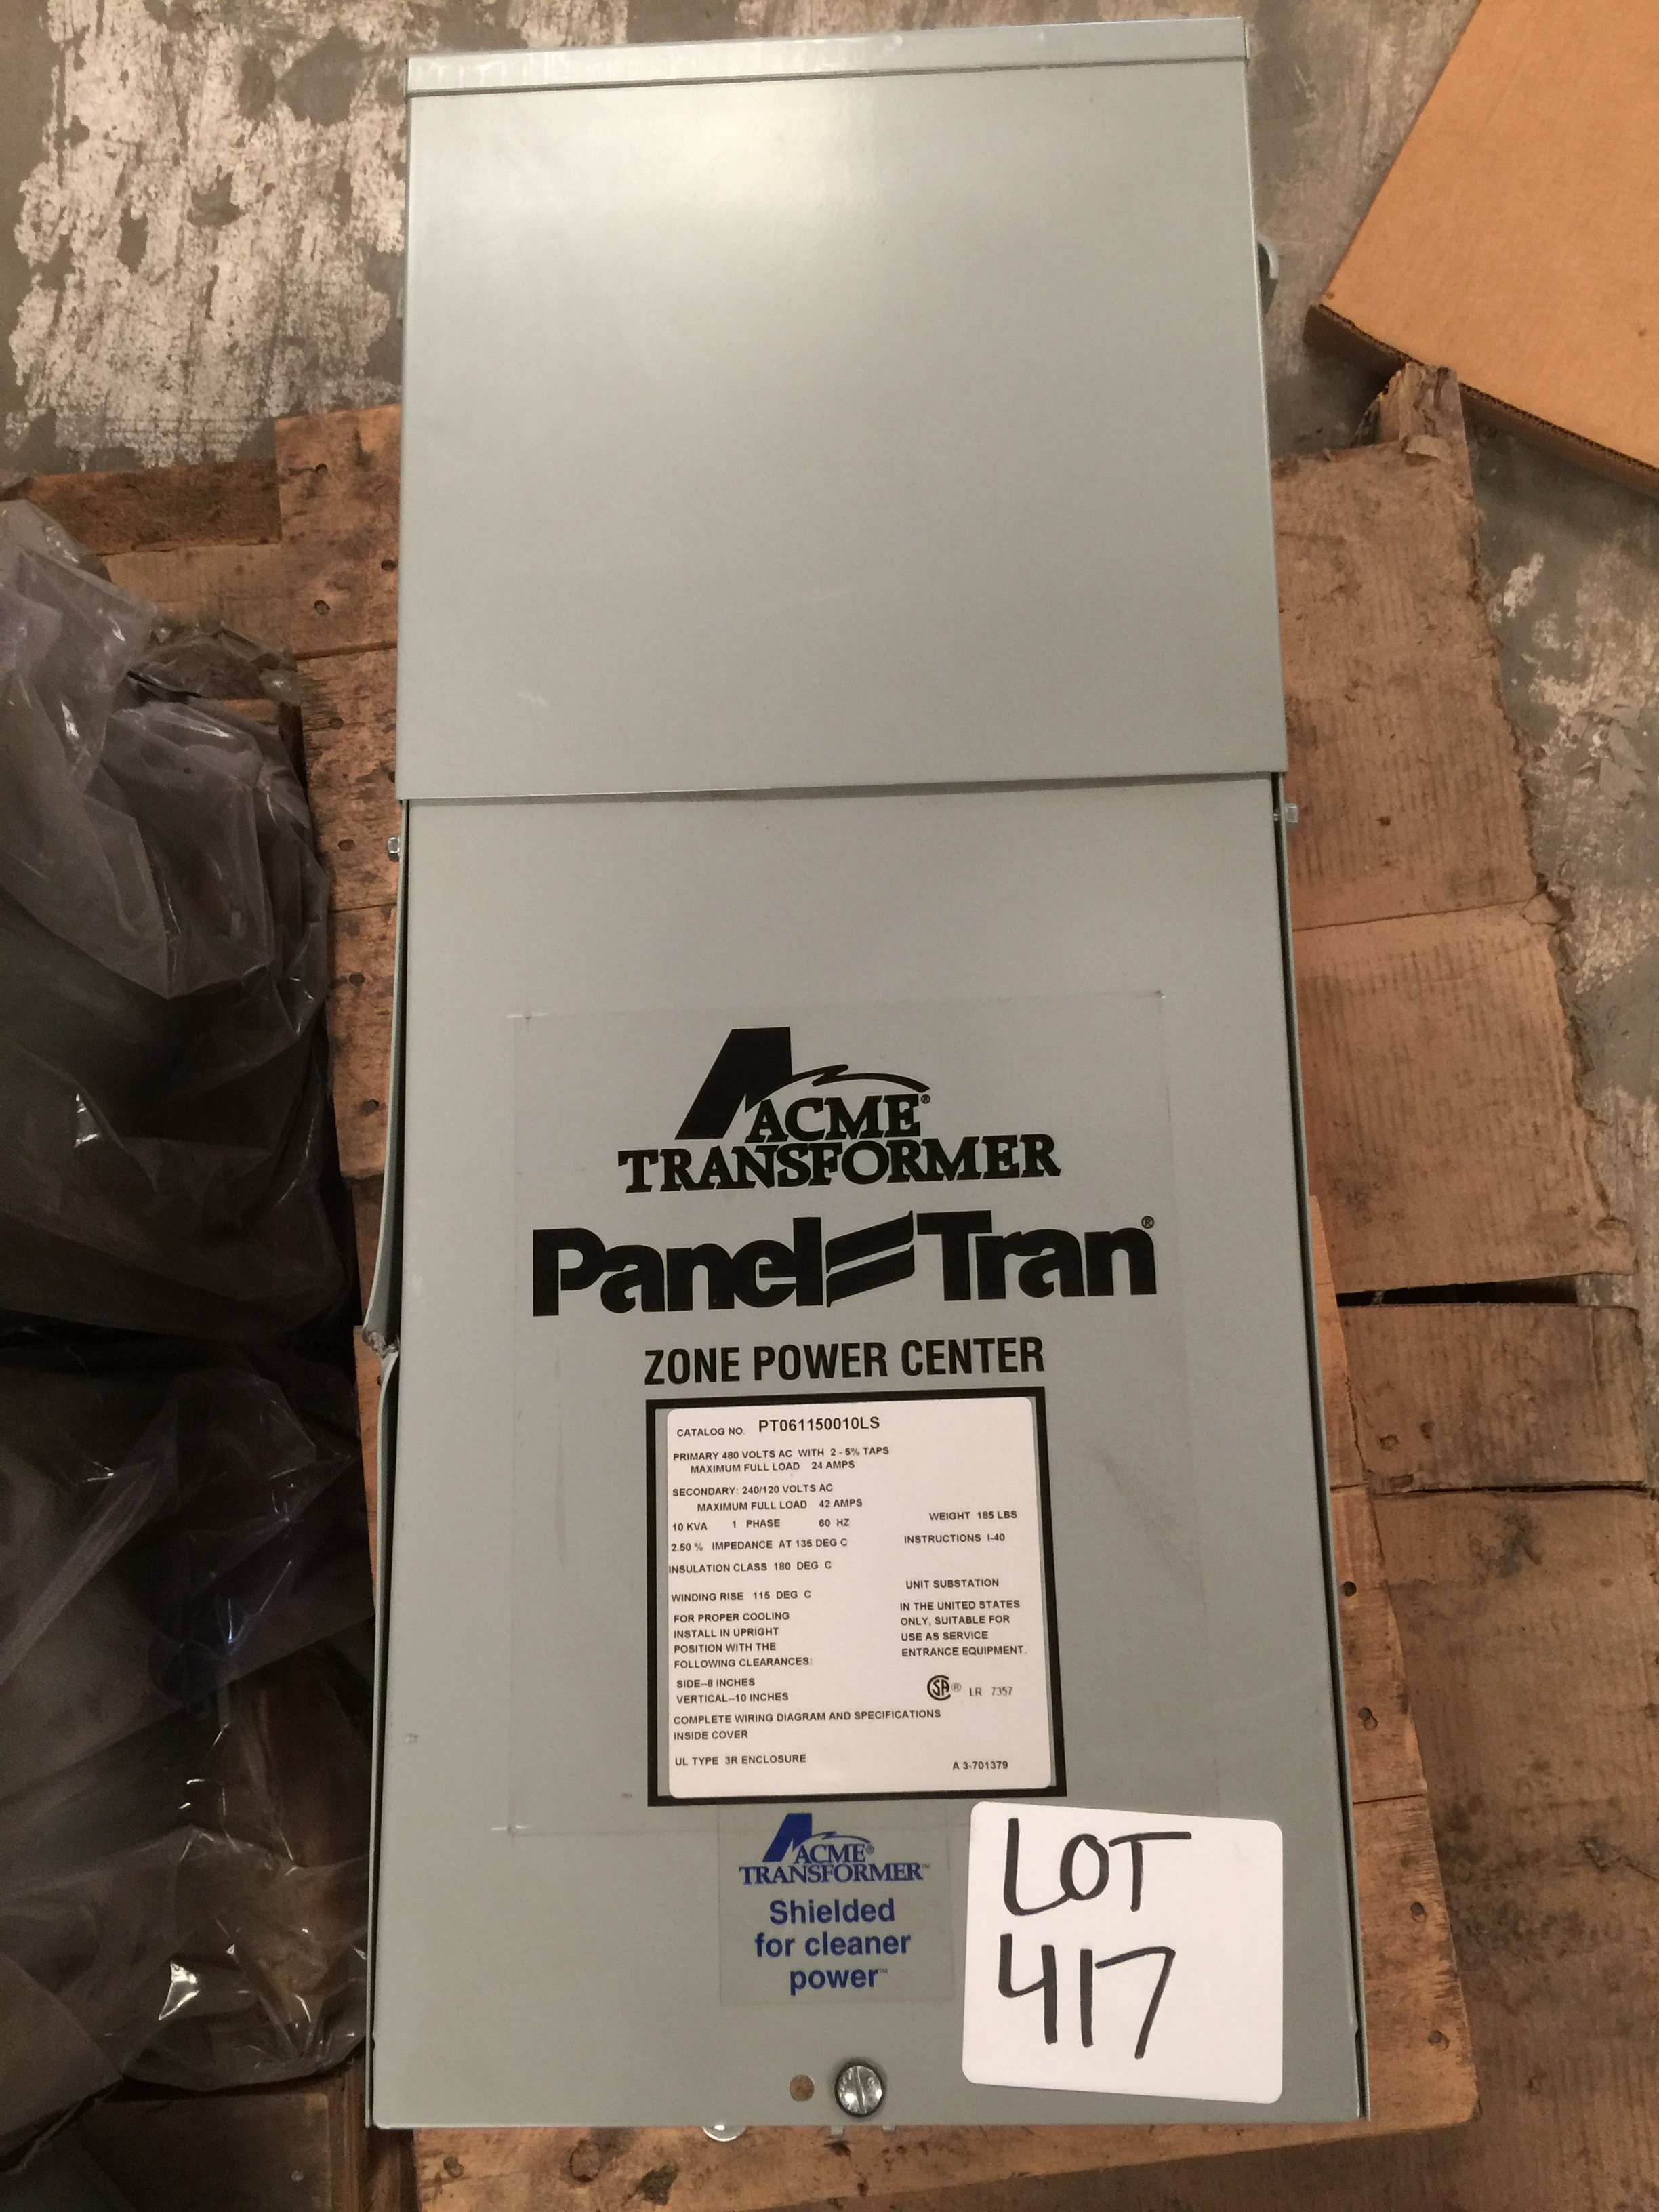 Acme Transformer Panel Trans Zone Power Center Cat Pt061150010l5 24 Volt Wiring Diagrams Lot 417 Primary 480